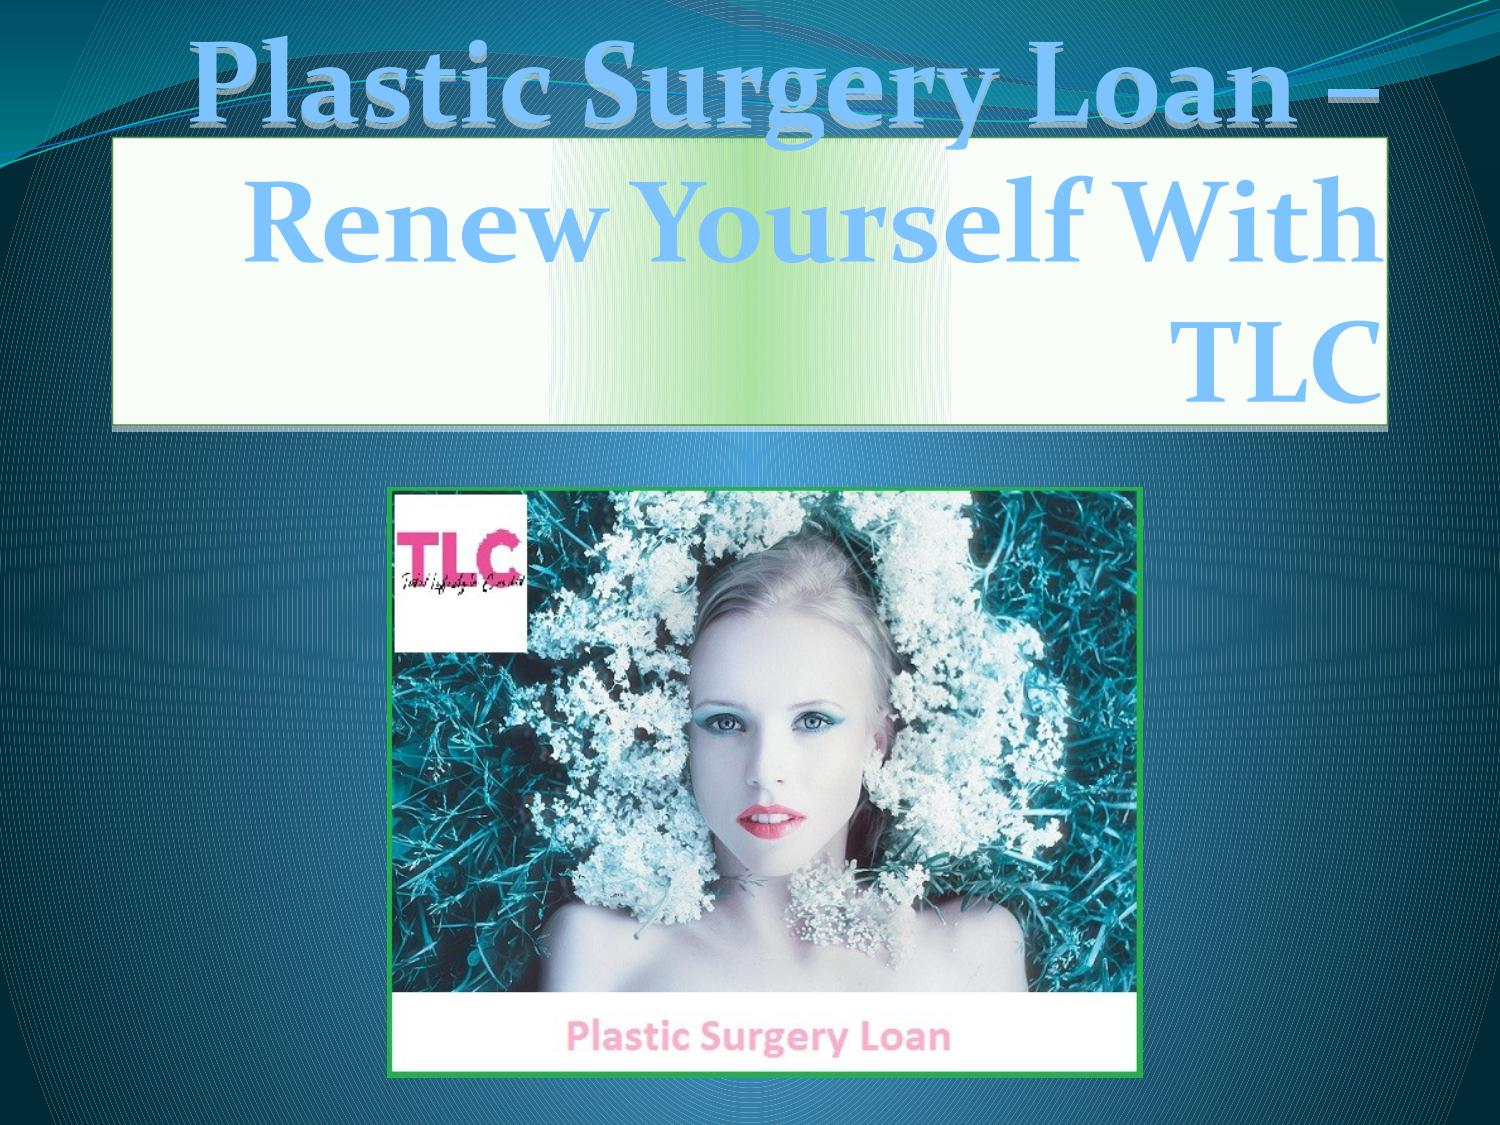 Plastic Surgery Loan – Renew Yourself With TLC by Total